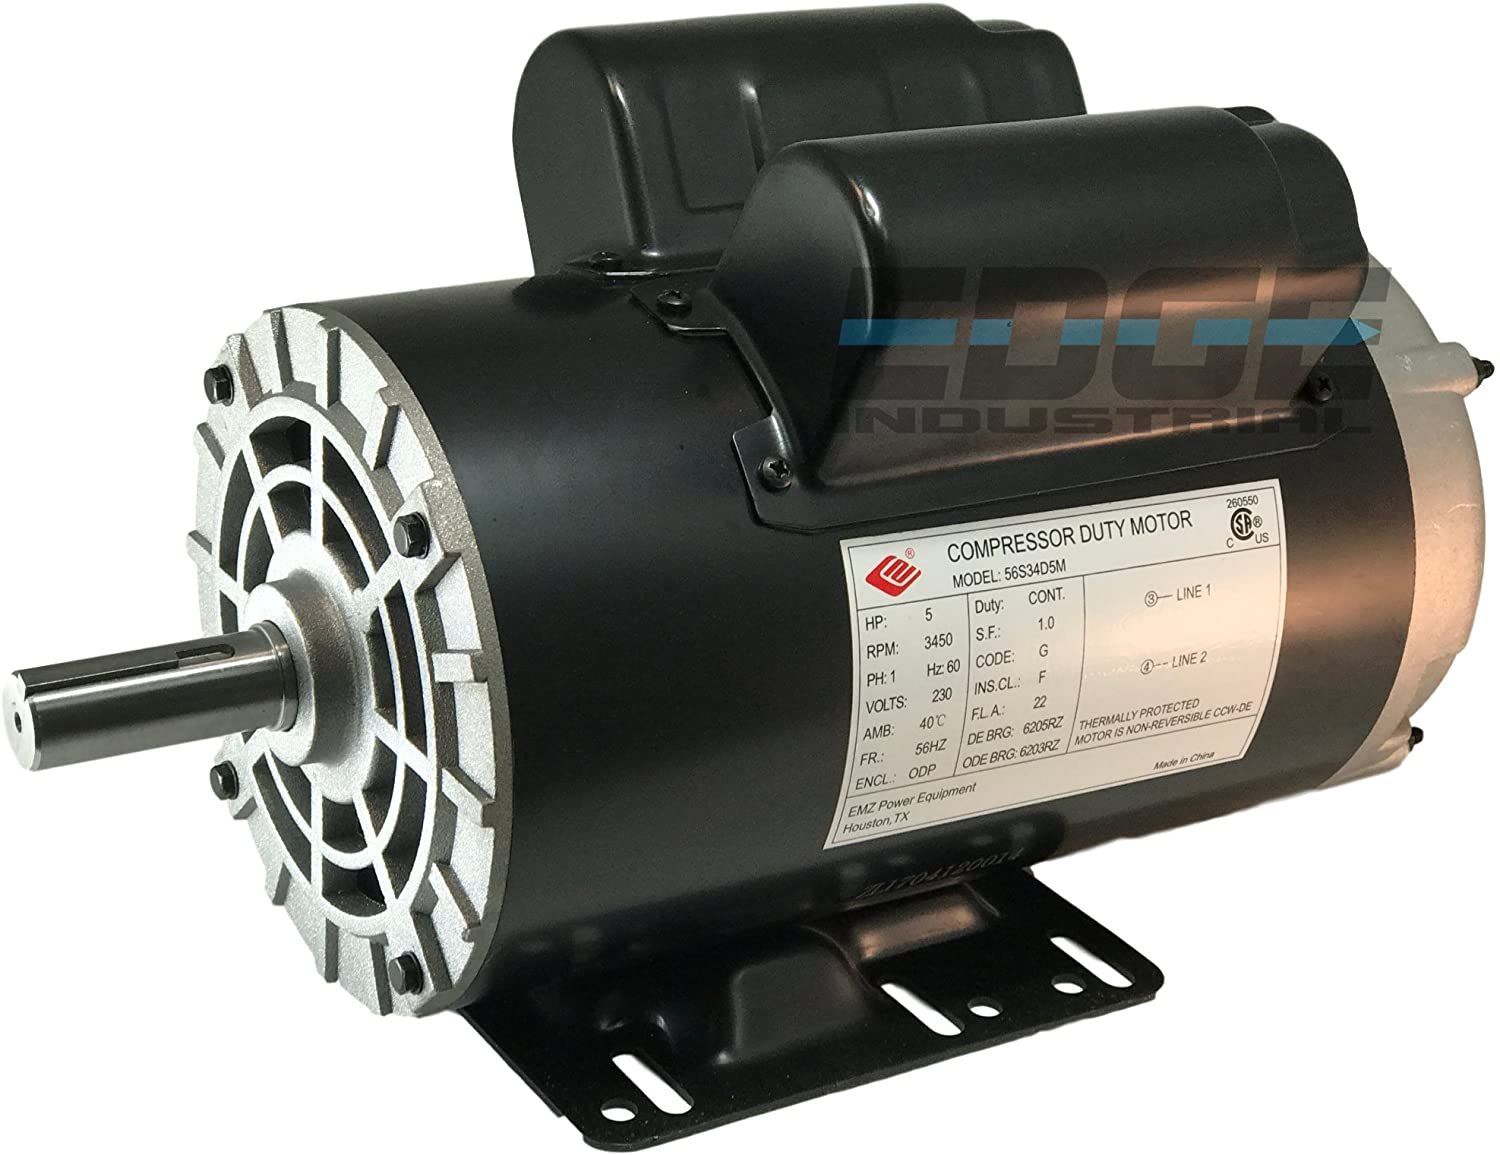 "NEW 5HP COMPRESSOR DUTY ELECTRIC MOTOR, 56HZ FRAME, 3450 RPM, 7/8"" SHAFT DIAMETER, NEMA RATED MOTOR"